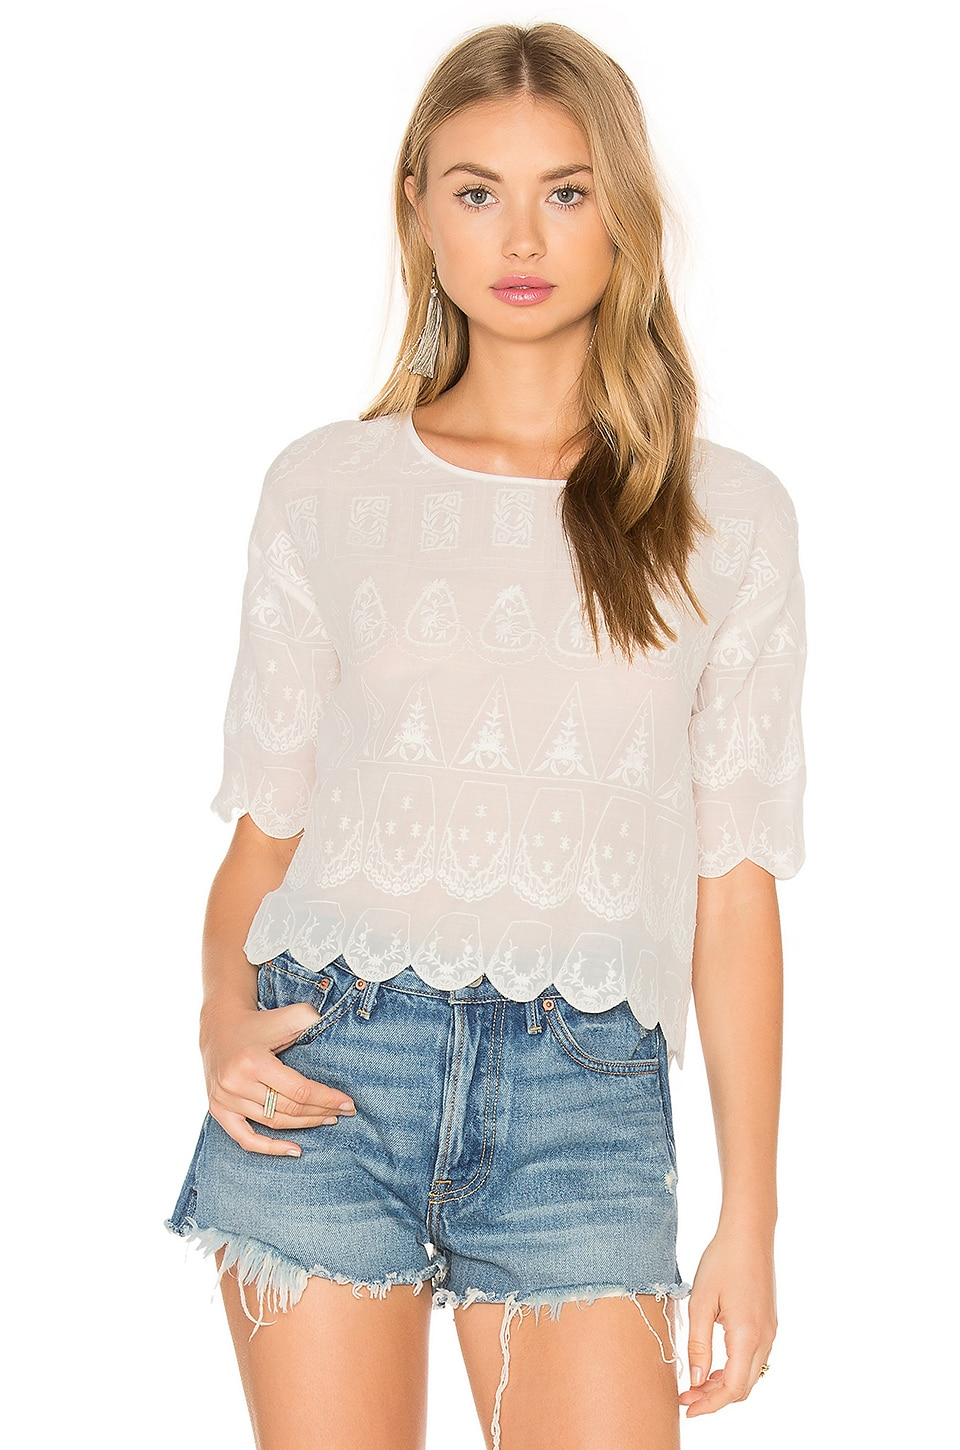 Hoss Intropia Short Sleeve Blouse in Off White